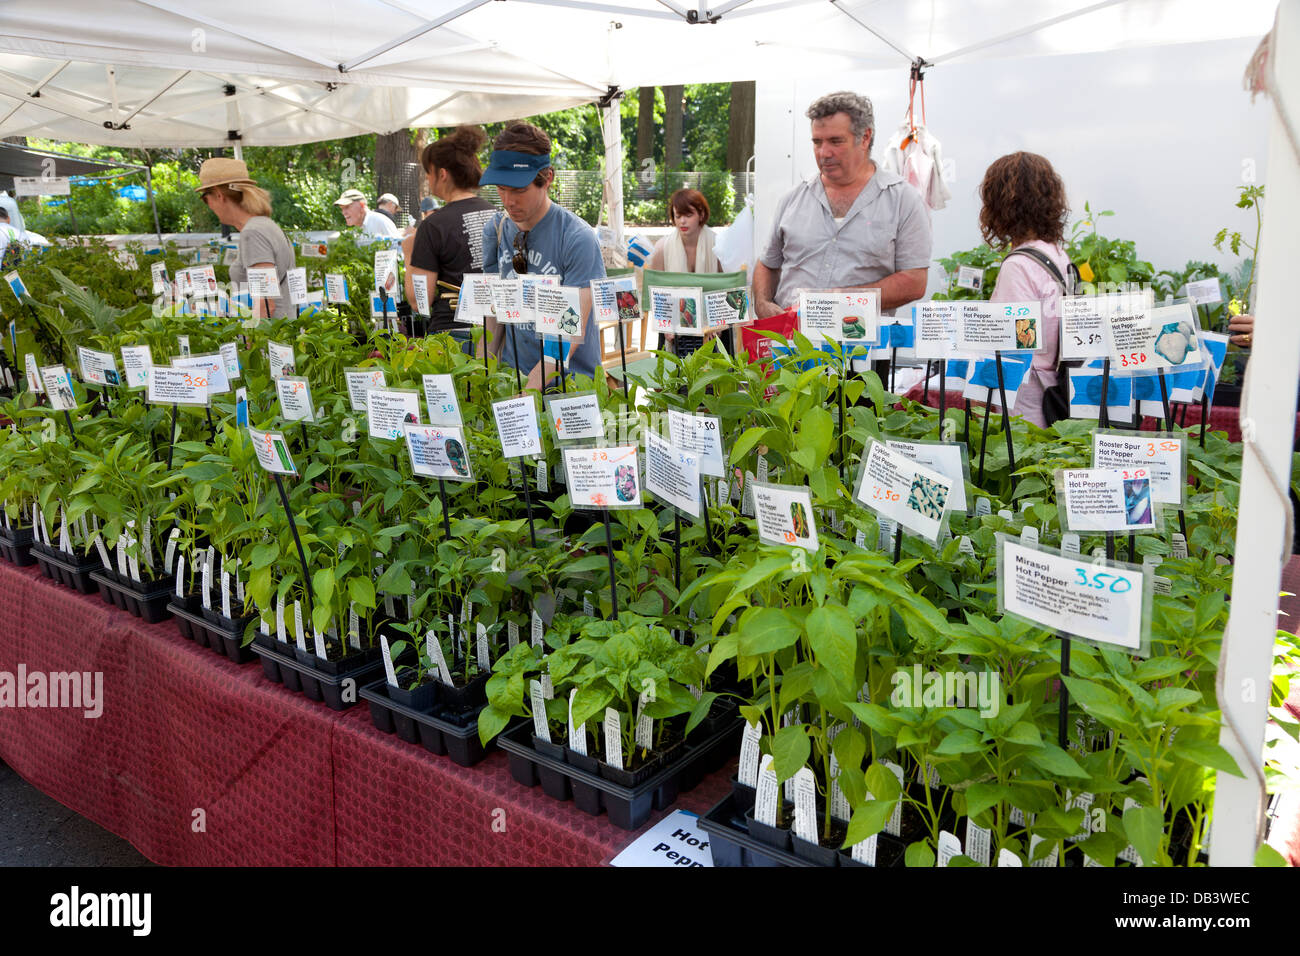 Union Square greenmarket, NYC - Stock Image